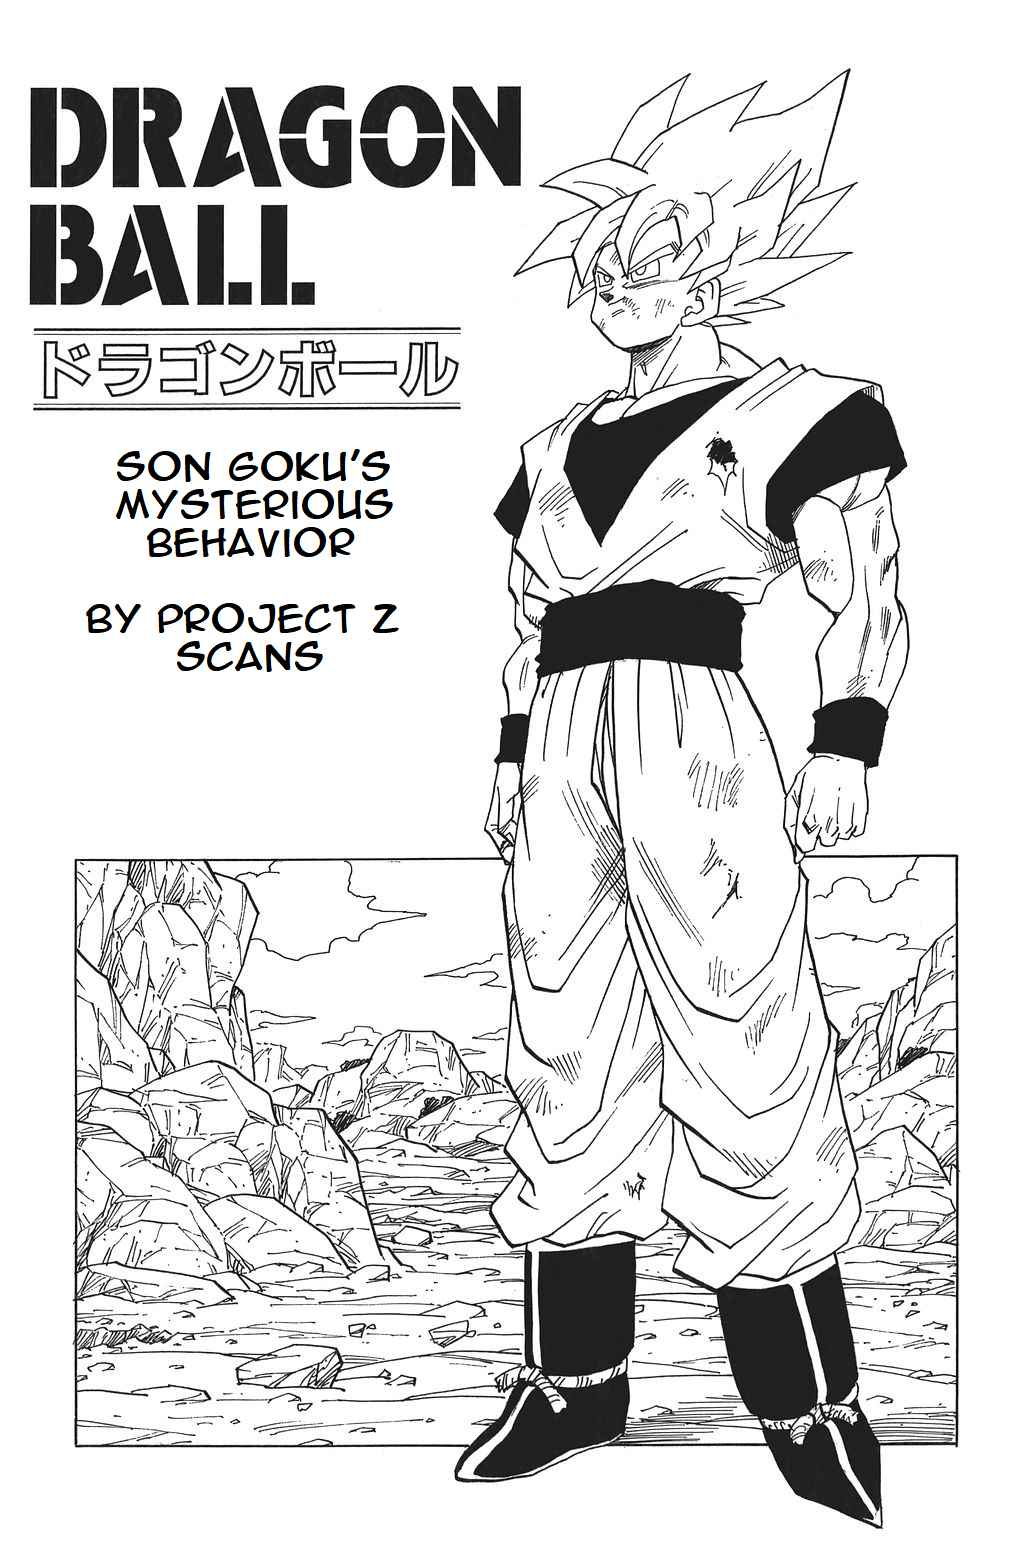 Dragon Ball Vol. 34 Ch. 402 Son Goku's Mysterious Behavior